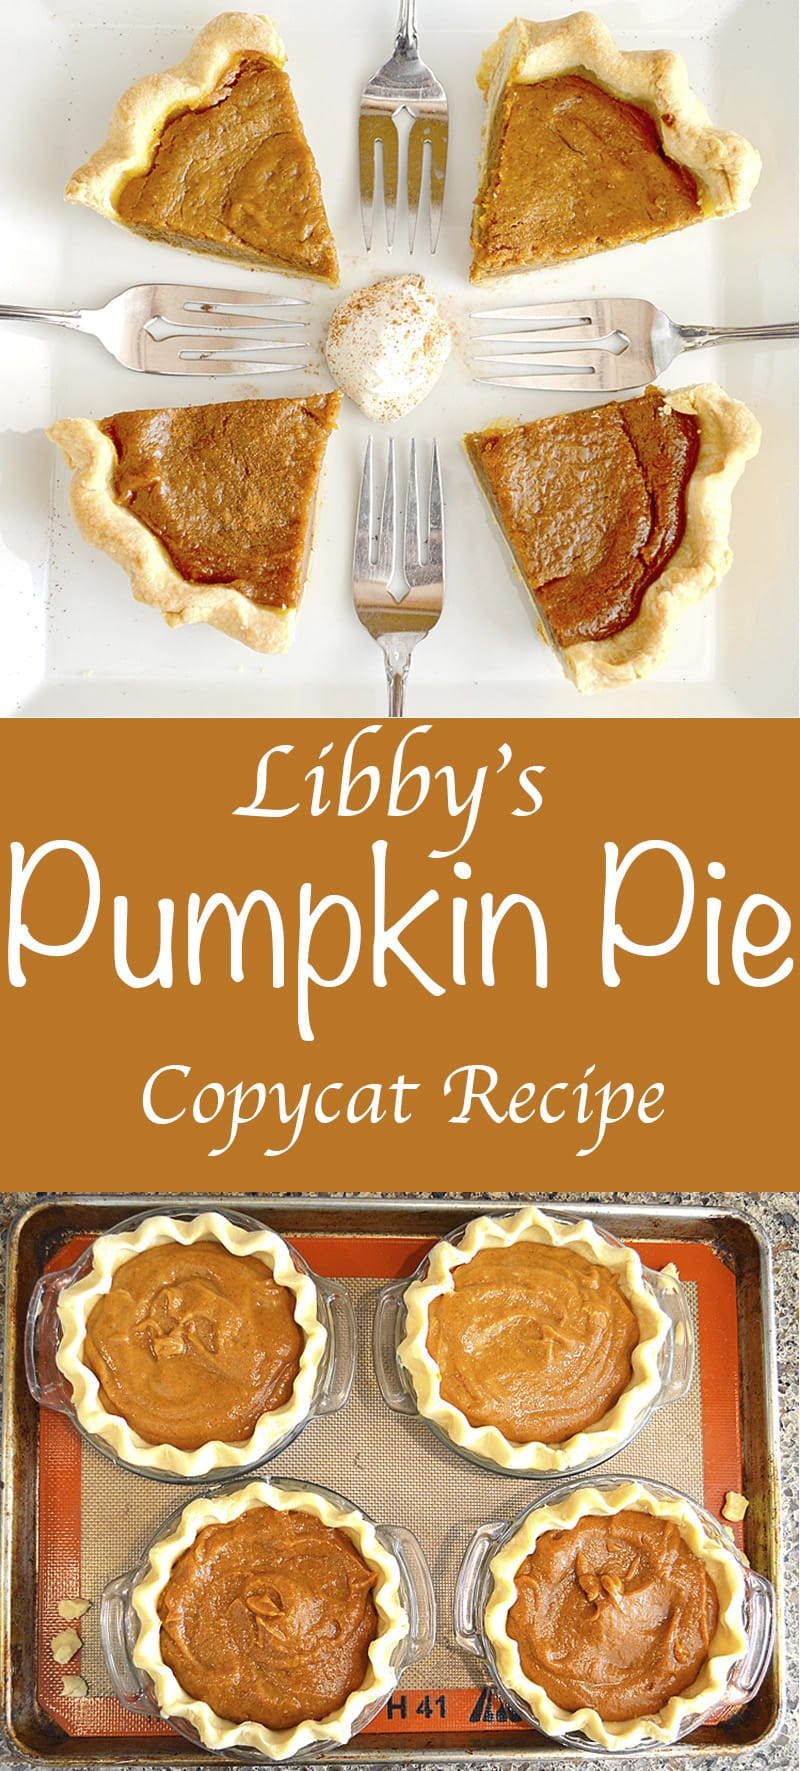 Libby's Pumpkin Pie Copycat Recipe